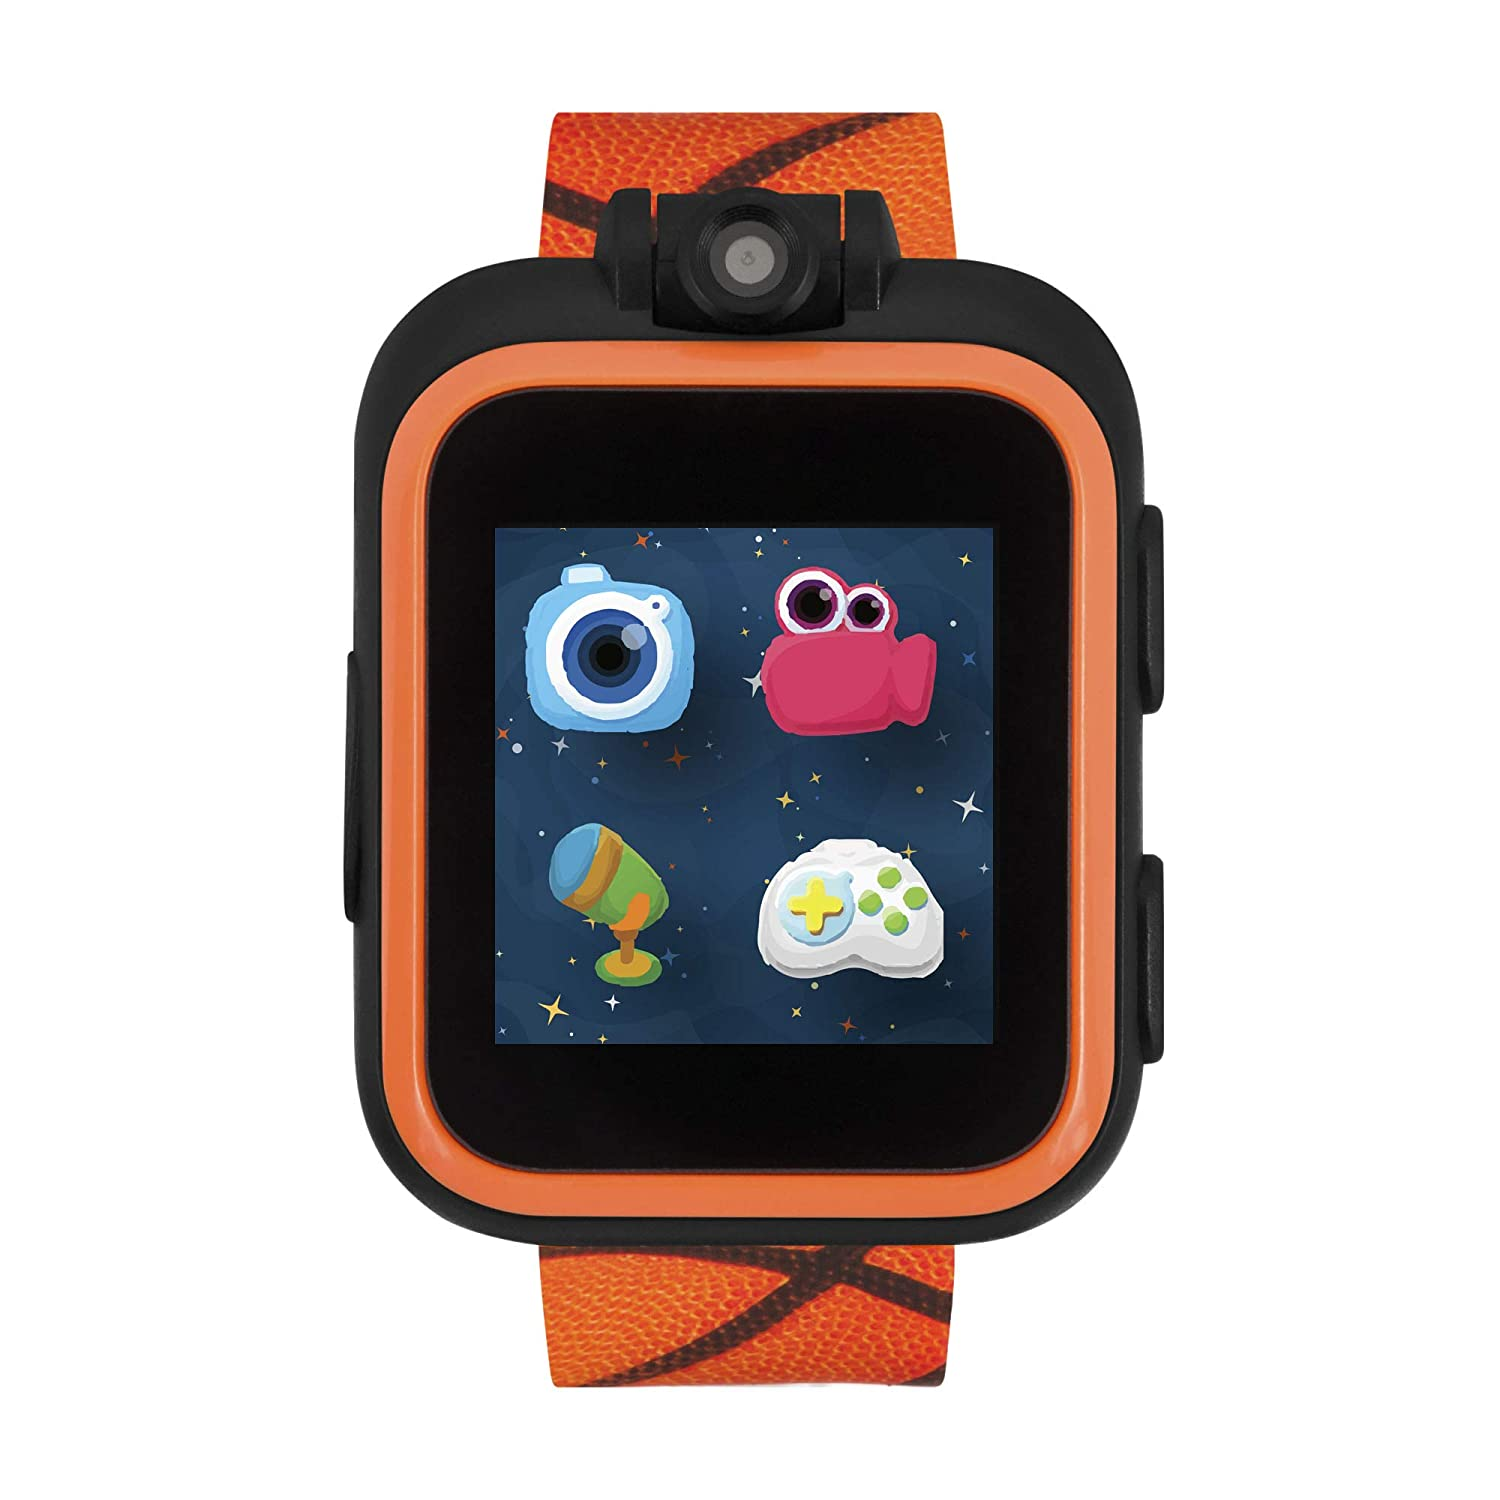 iTouch Playzoom Kids Smart Watch with Digital Camera and Video Recorder (Basketball)